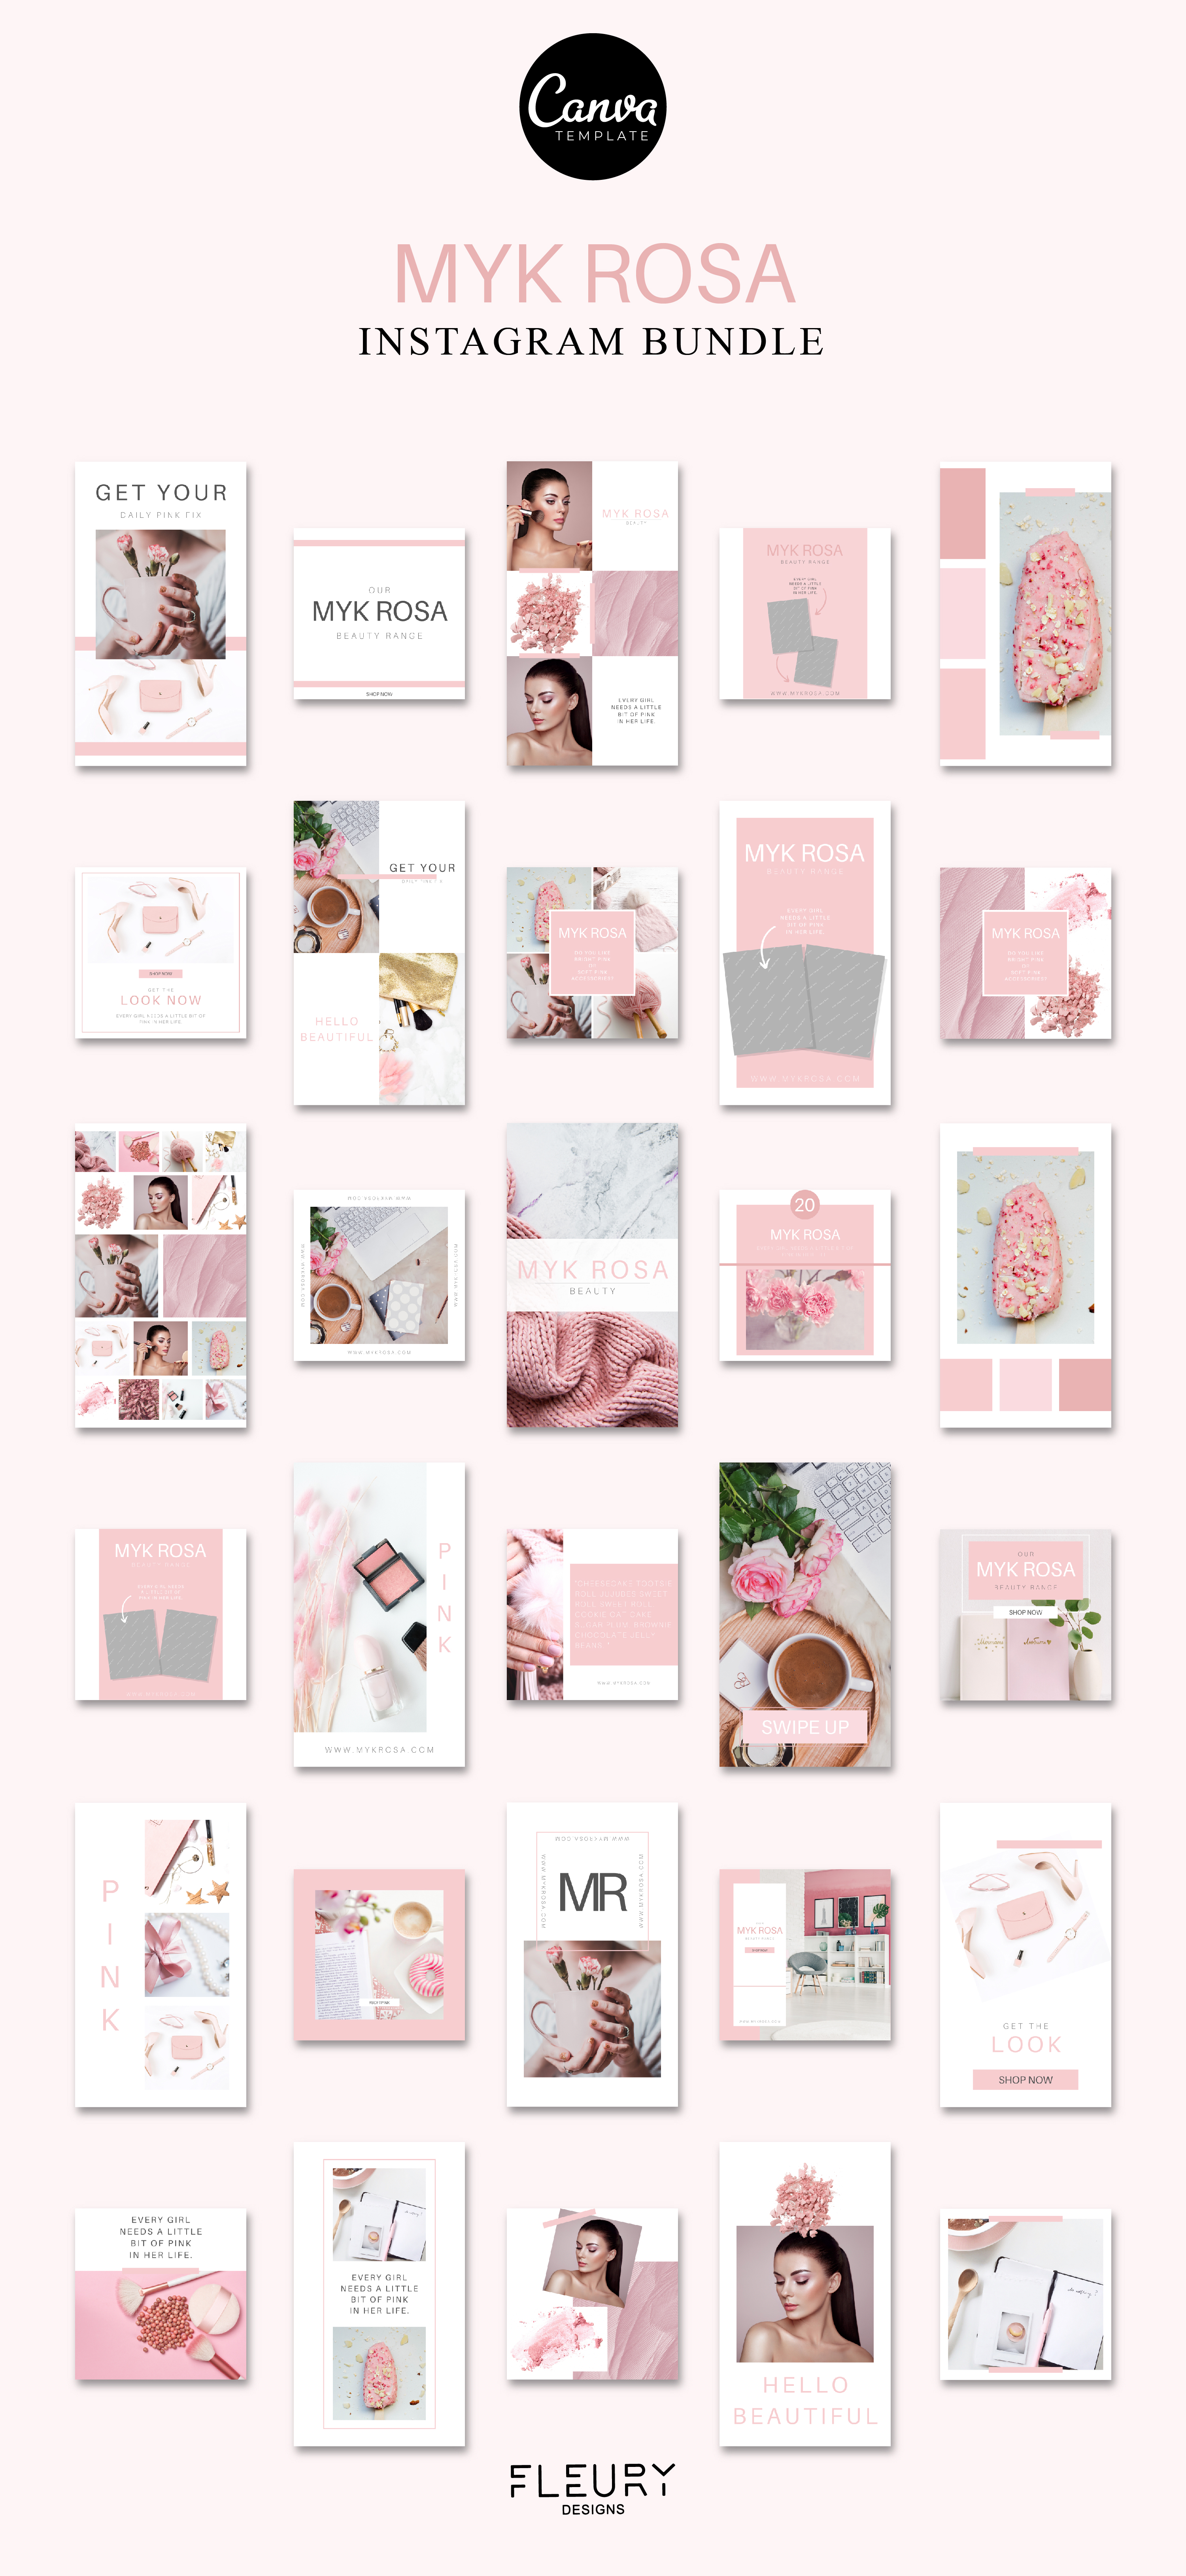 60 Instagram Post & Story Templates For Canva - Myk Rosa example image 4